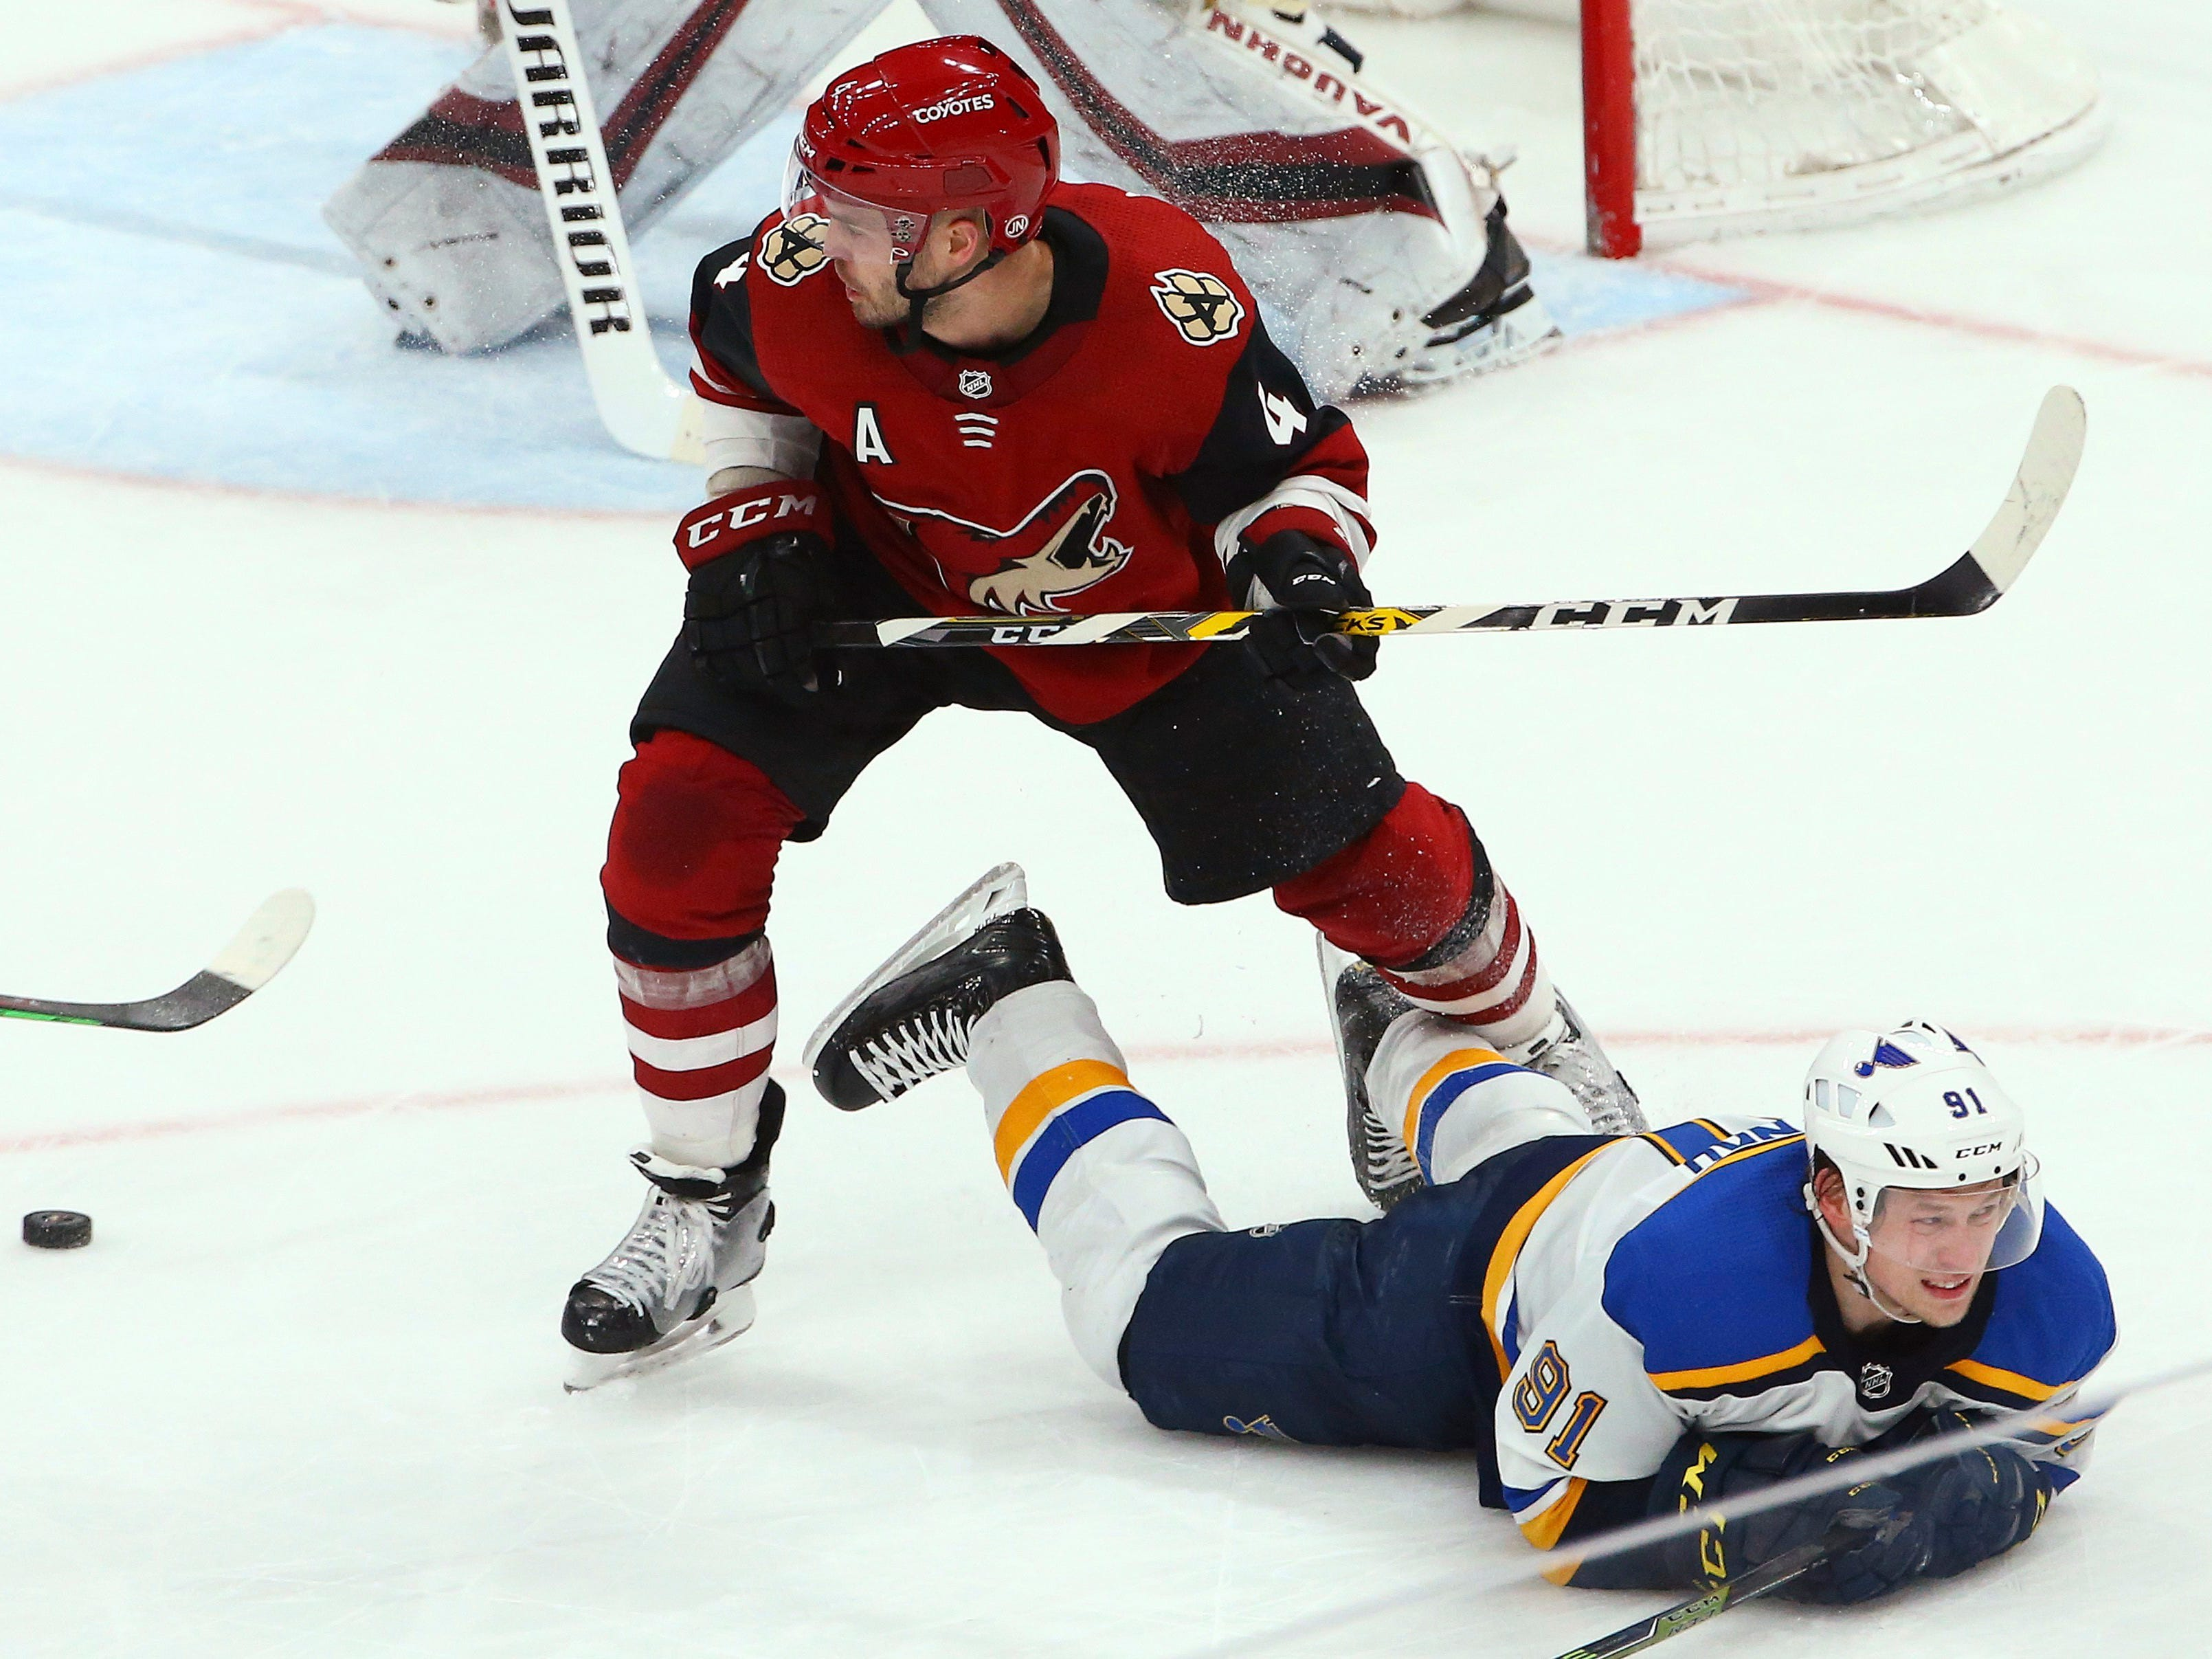 Arizona Coyotes defenseman Niklas Hjalmarsson (4) sends St. Louis Blues right wing Vladimir Tarasenko (91) to the ice during the second period of an NHL hockey game Thursday, Feb. 14, 2019, in Glendale, Ariz.